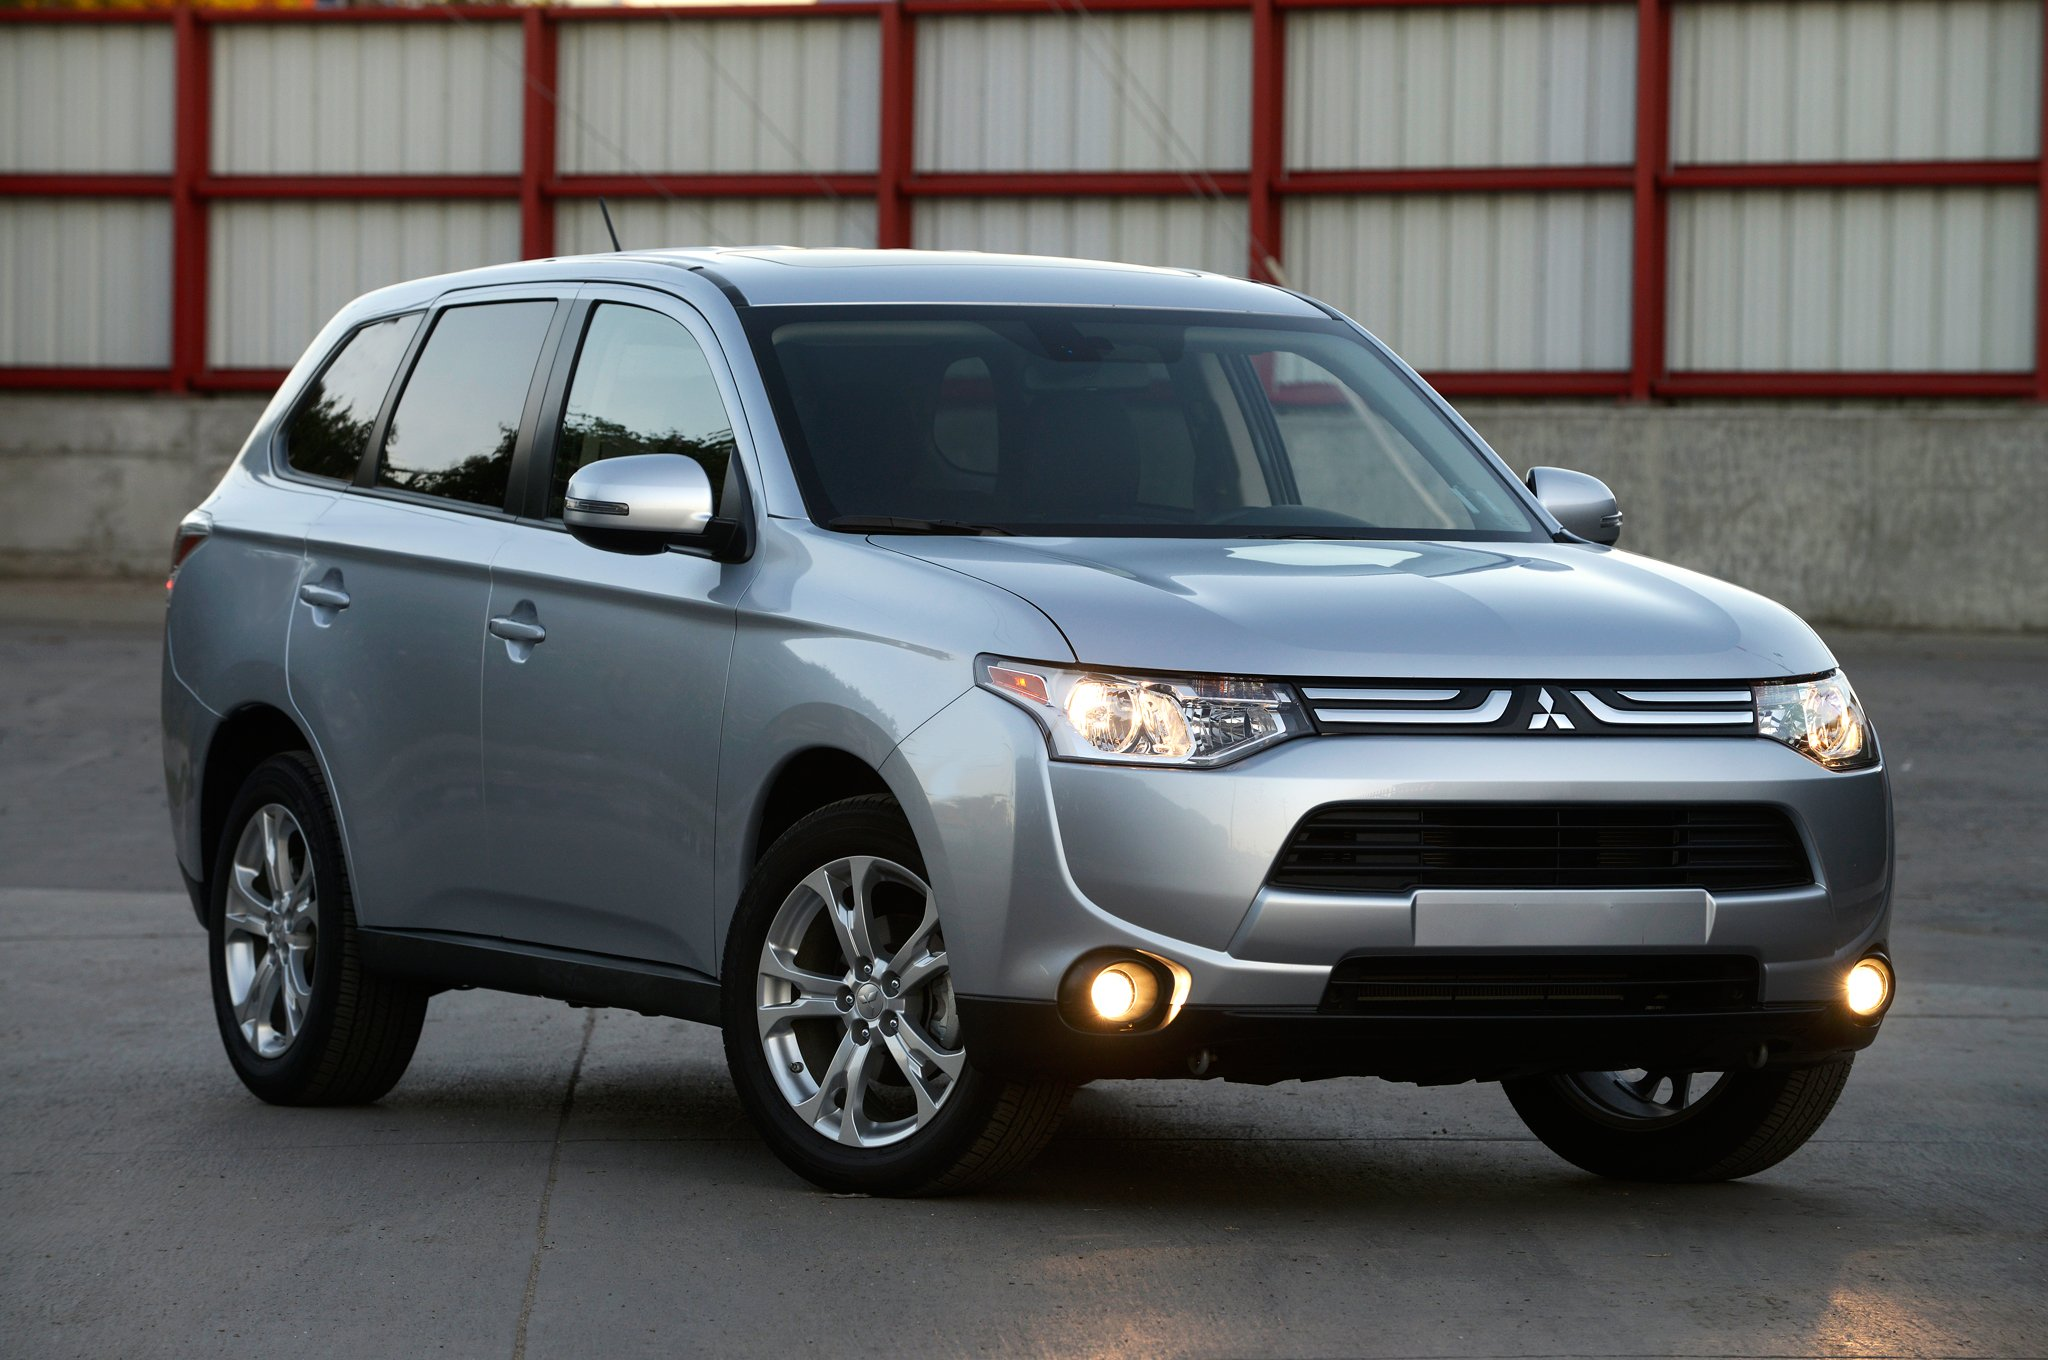 mitsubishi outlander pictures #13